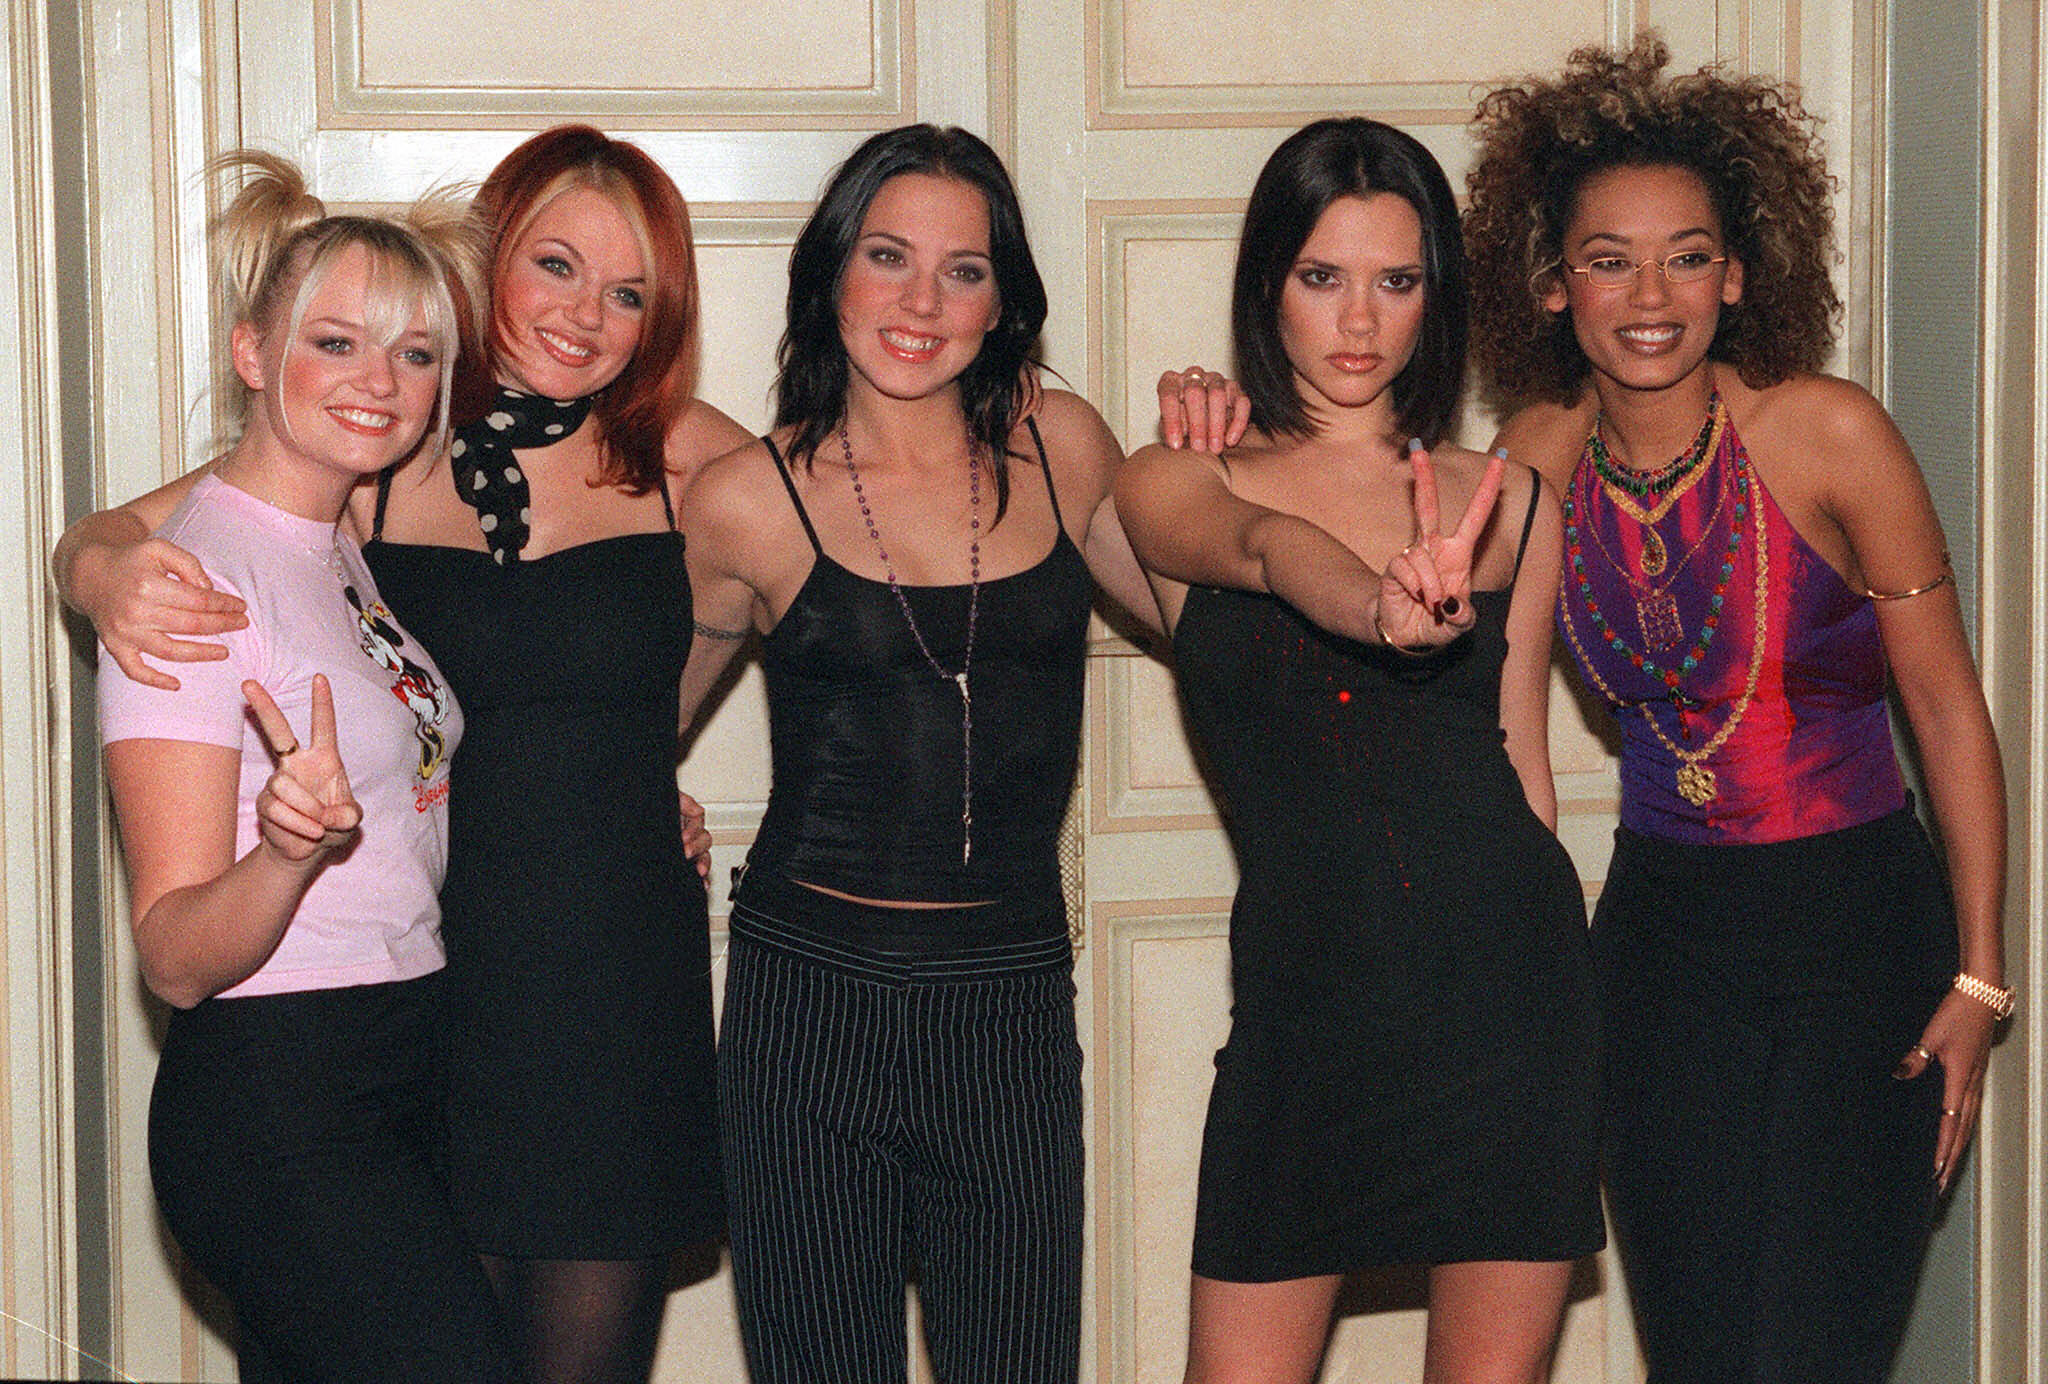 Melanie Chisholm (middle) says the 'insane' levels of fame that followed the popularity of the Spice Girls led to her developing an eating disorder (Picture: AFP/Getty Images)